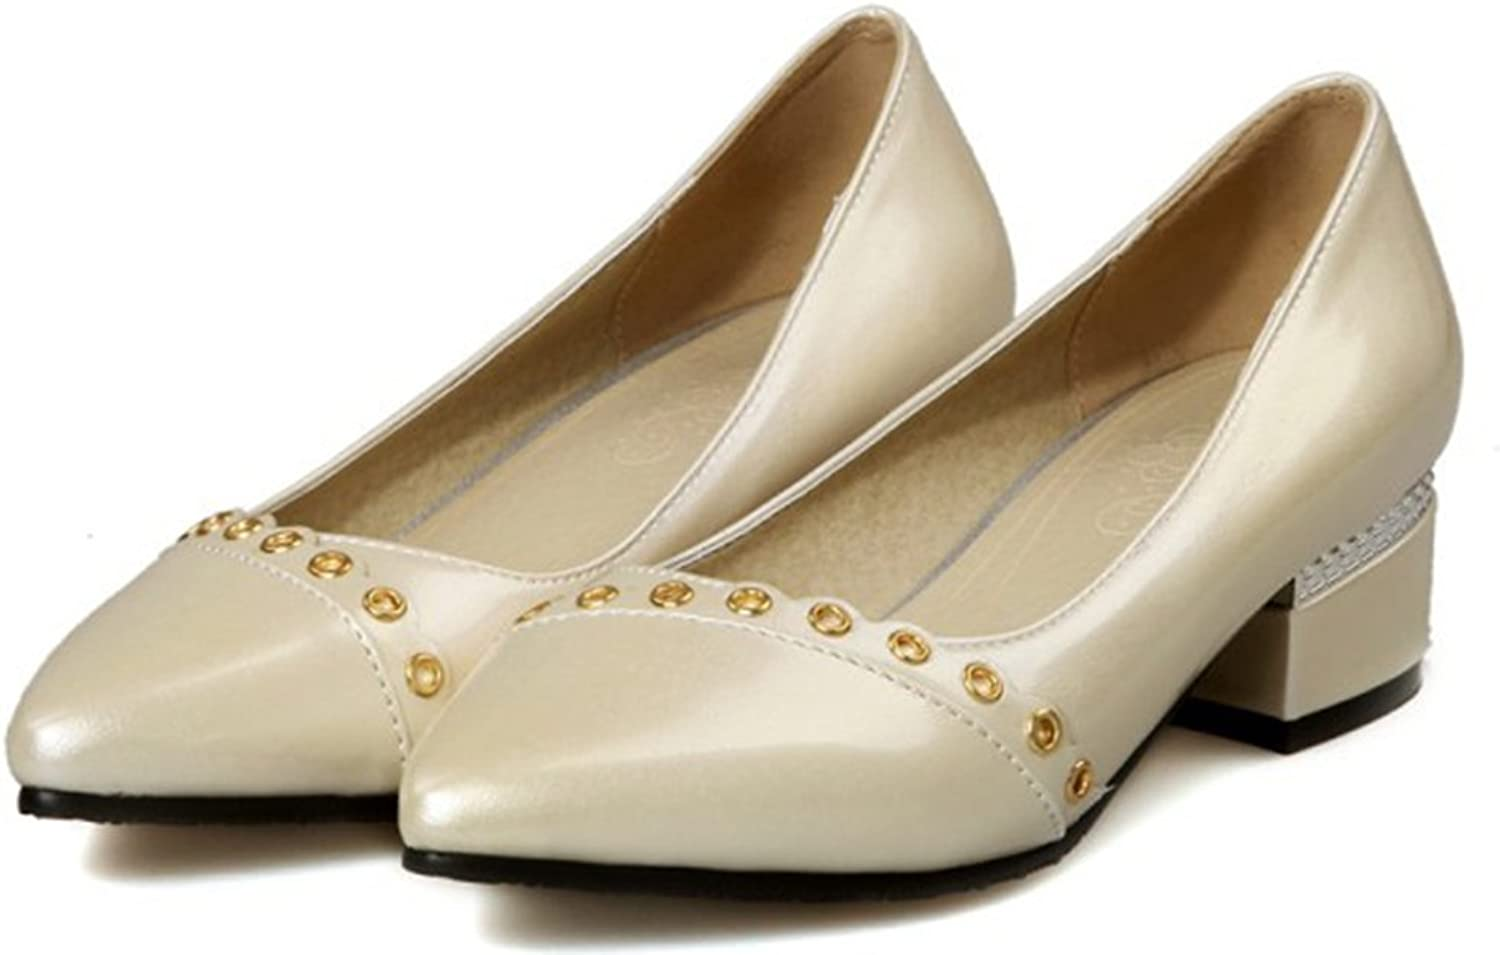 IDIFU Women's Elegant Closed Pointed Toe Slip On Pumps Low Top shoes with Heels